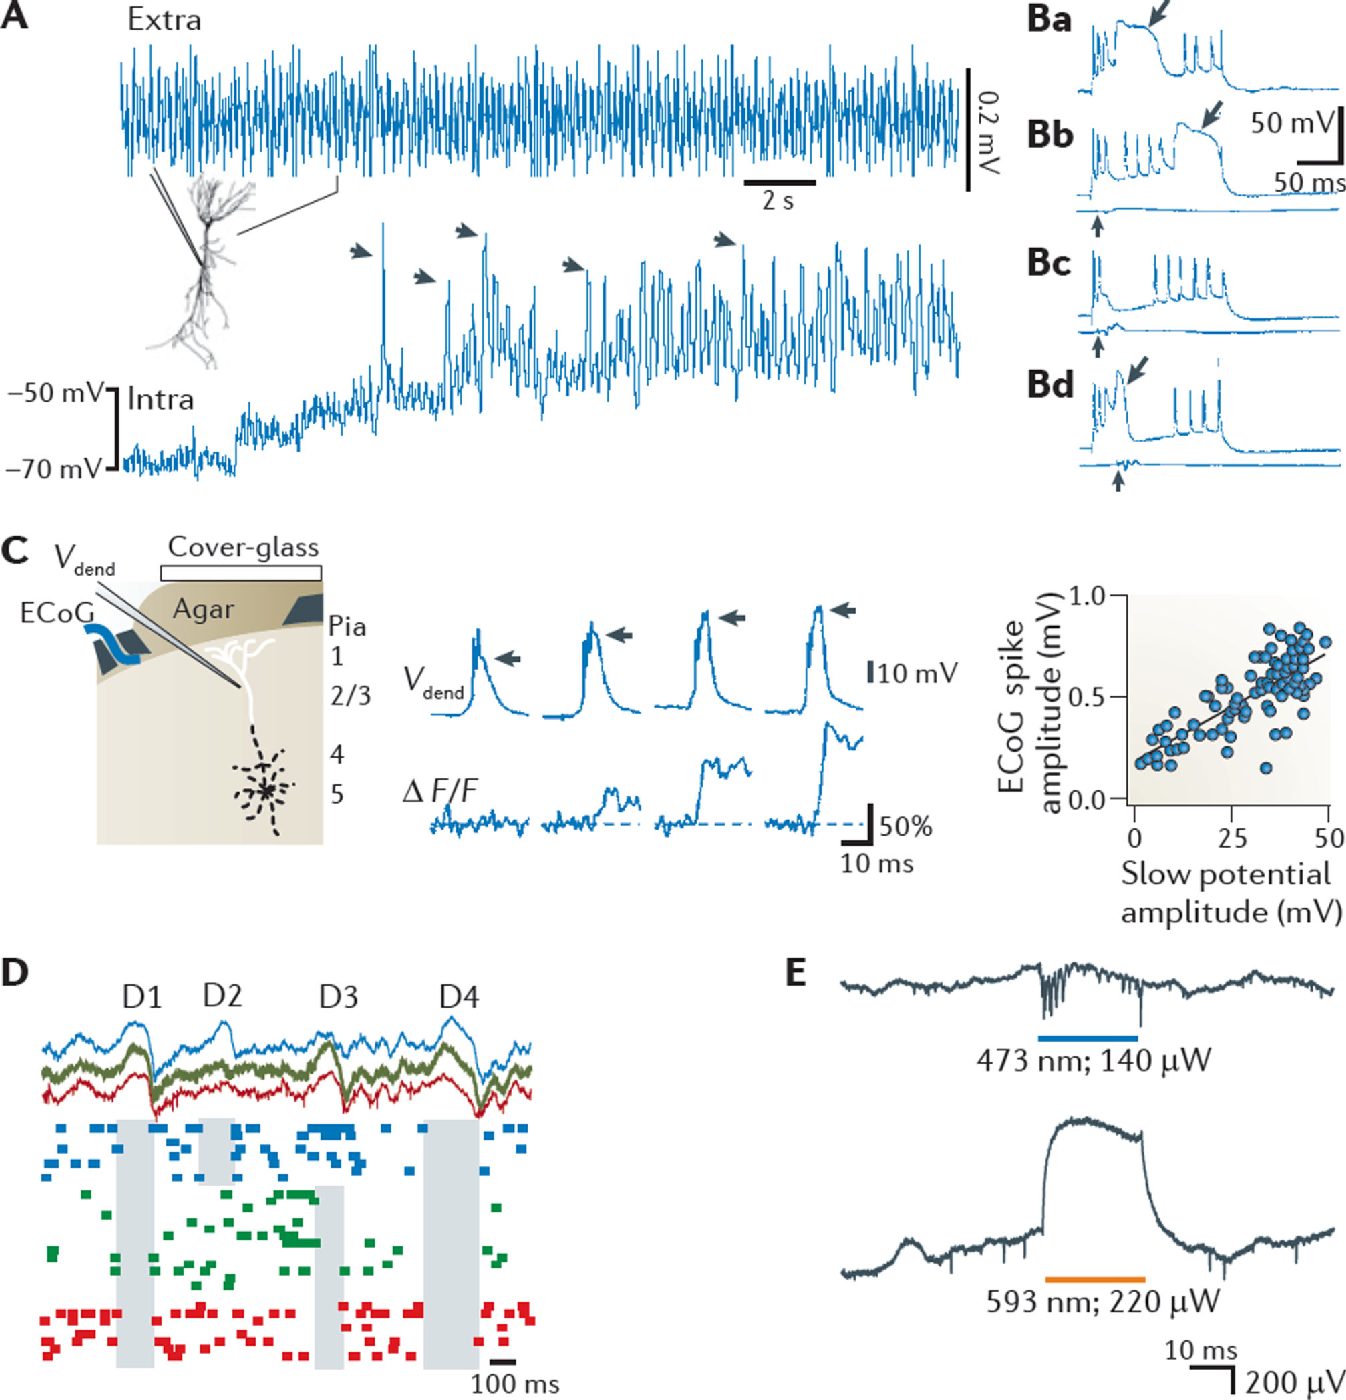 Figure 3. Non-synaptic contributions to the LFP Ca2+ spikes, disfacilitation and disinhibition contribute to the local field potential (LFP). A | Voltage-dependence of a theta-frequency oscillation in a hippocampal pyramidal cell dendrite in vivo. A continuous recording of extracellular (extra) and intradendritic (intra) activity in a hippocampal CA1 pyramidal cell is shown. The holding potential was manually shifted to progressively more depolarized levels by intradendritic current injection. The recording electrode contained QX-314 to block Na+ spikes. Note the large increase in the amplitude of the intradendritic theta oscillation upon depolarization. Arrows, putative high-